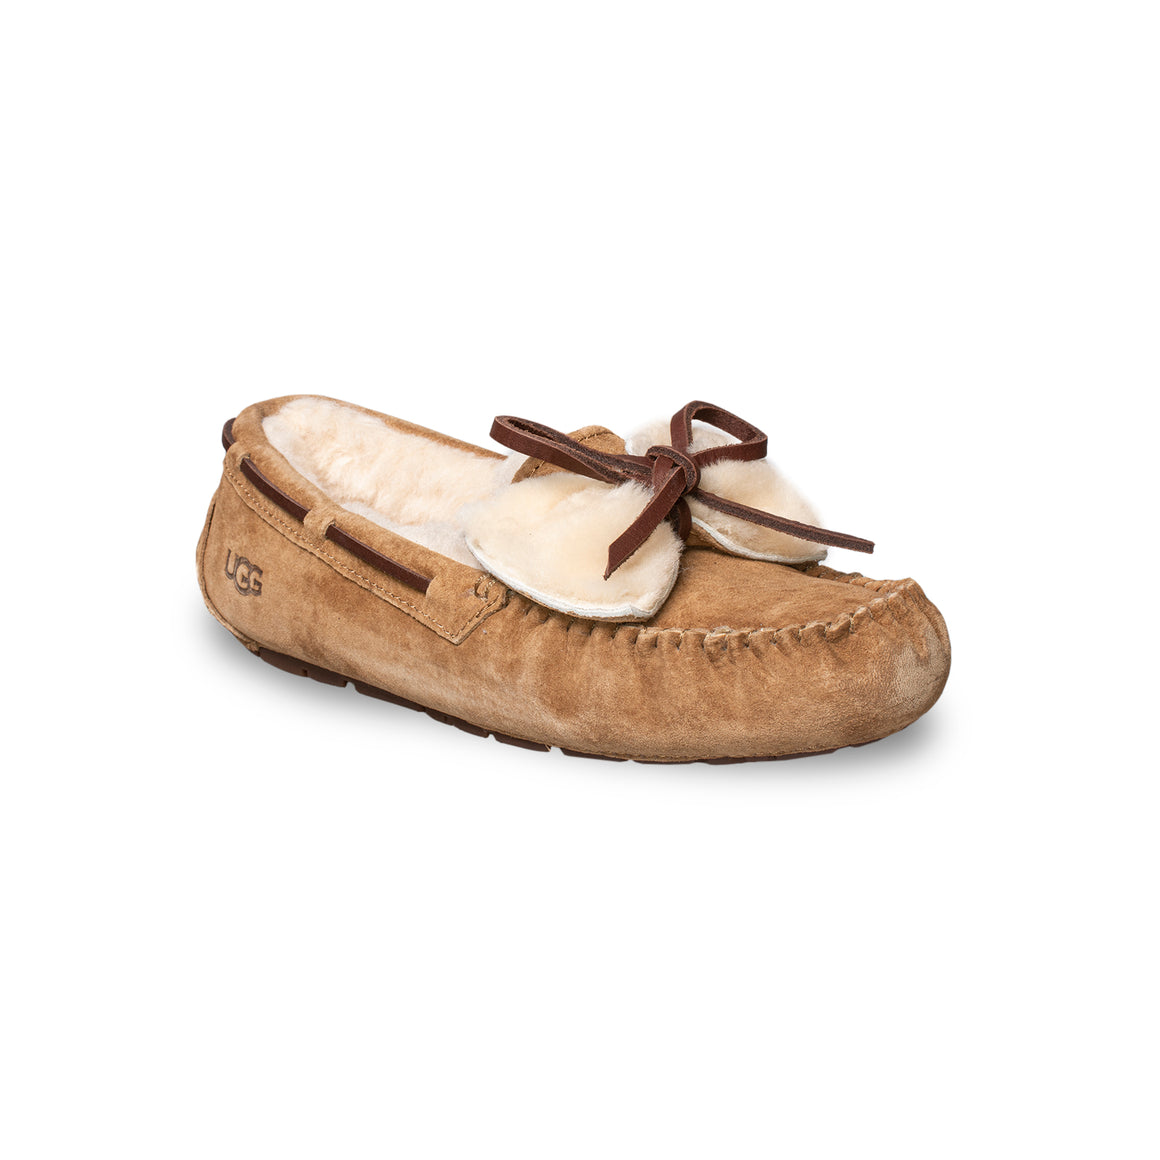 UGG Dakota Double Bow Chestnut Slippers - Women's